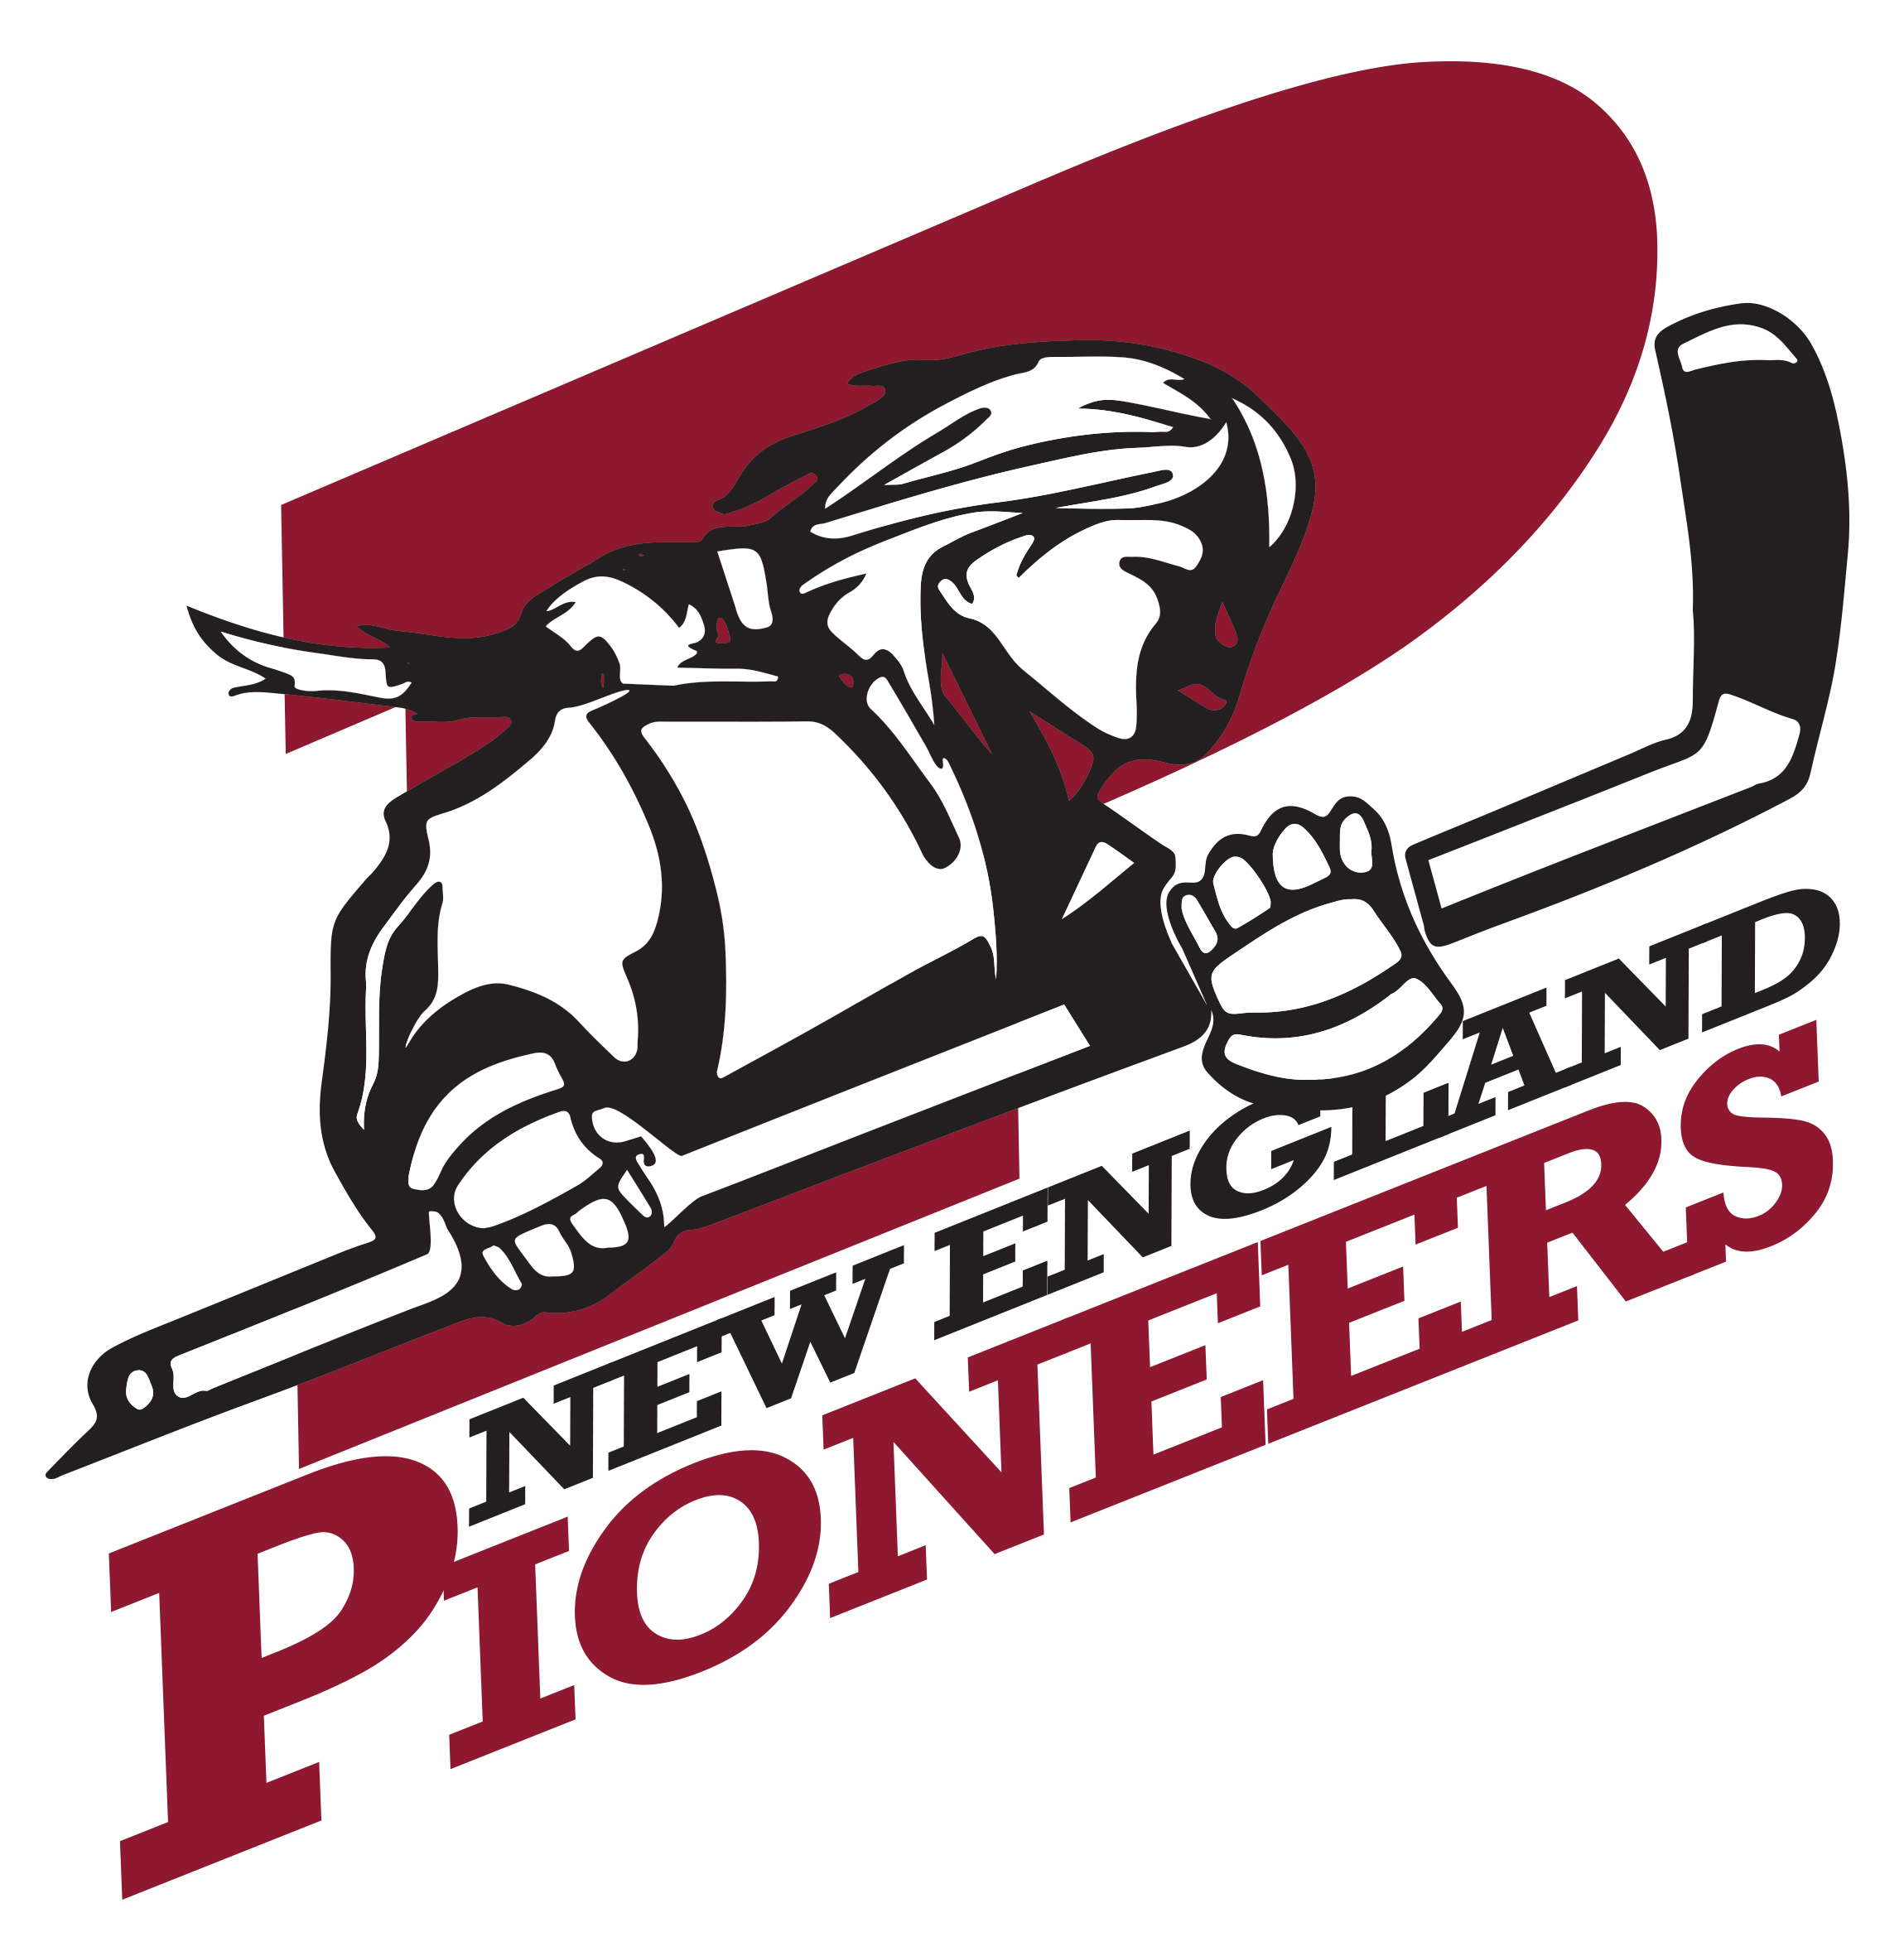 New England Pioneers